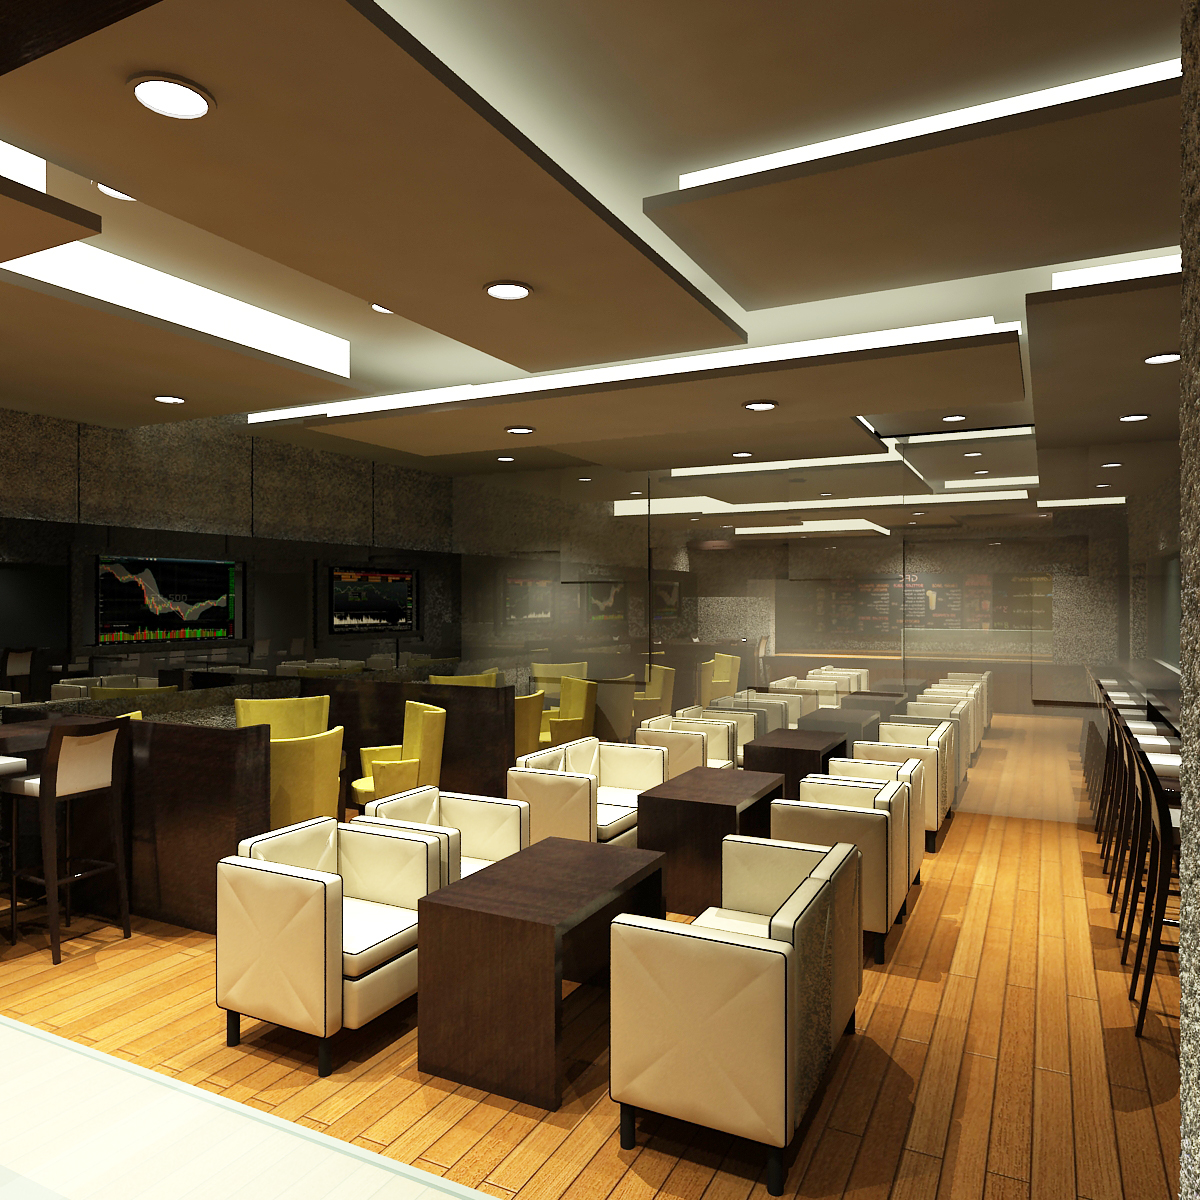 Commercial Interior Design And: Interior Design-Commercial-Trading Cafe-2010-Proposal By